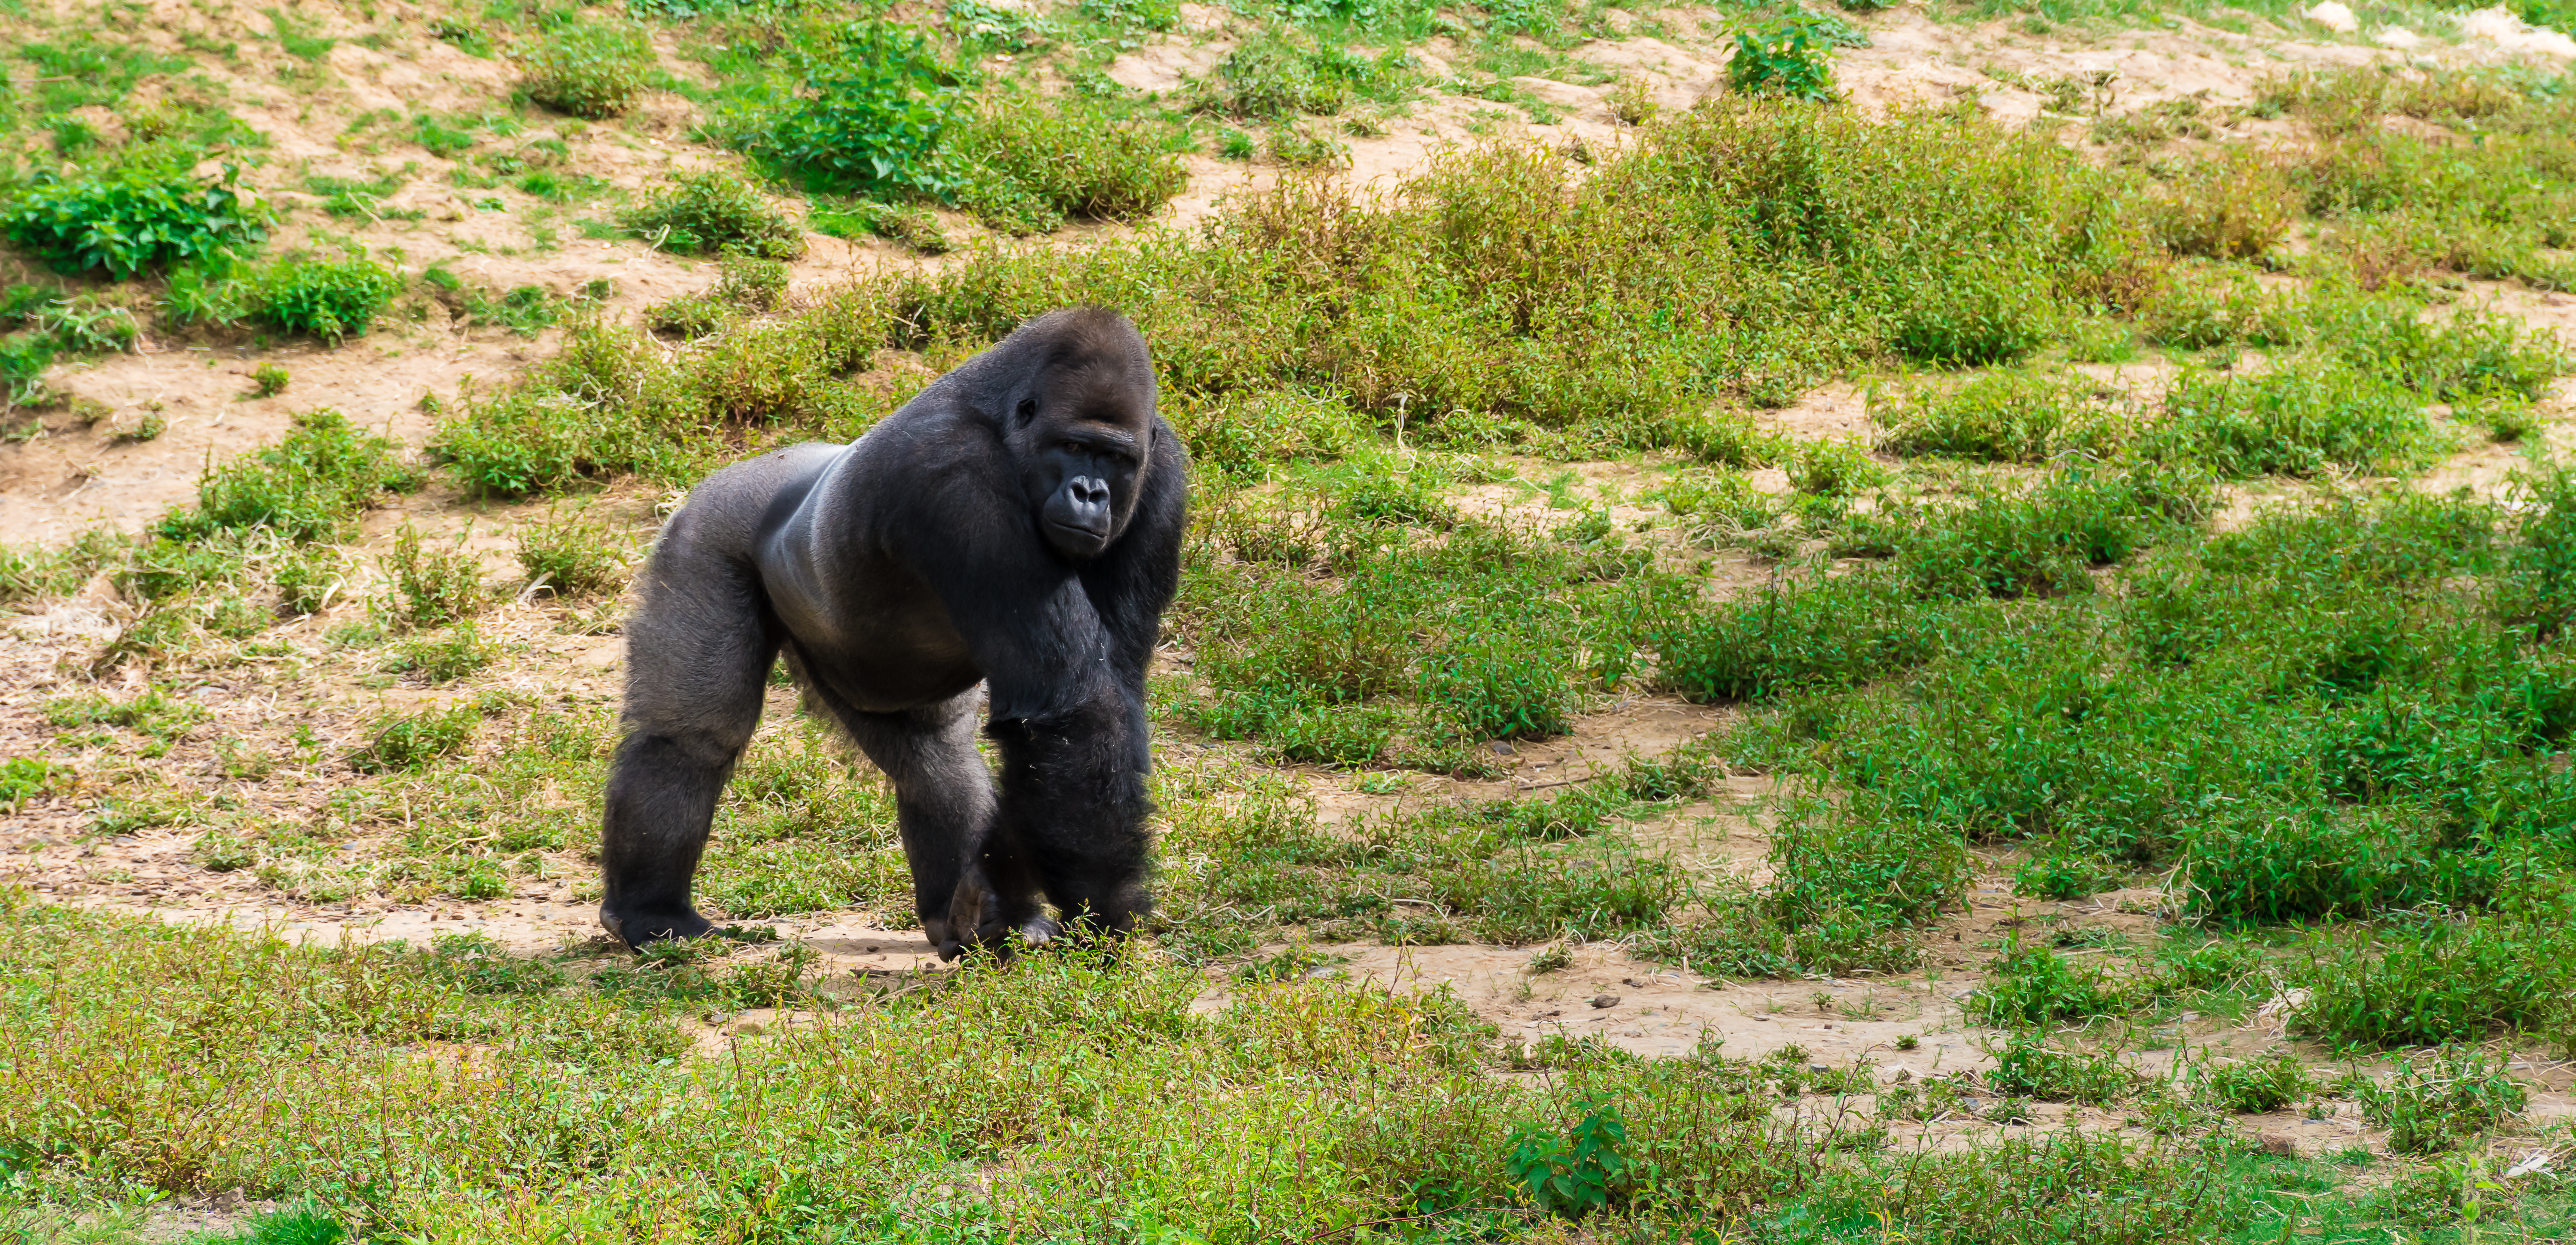 Rwanda's Gorillas Have Figured Out Where to Find Their Sodium Fix. but It's Dangerous